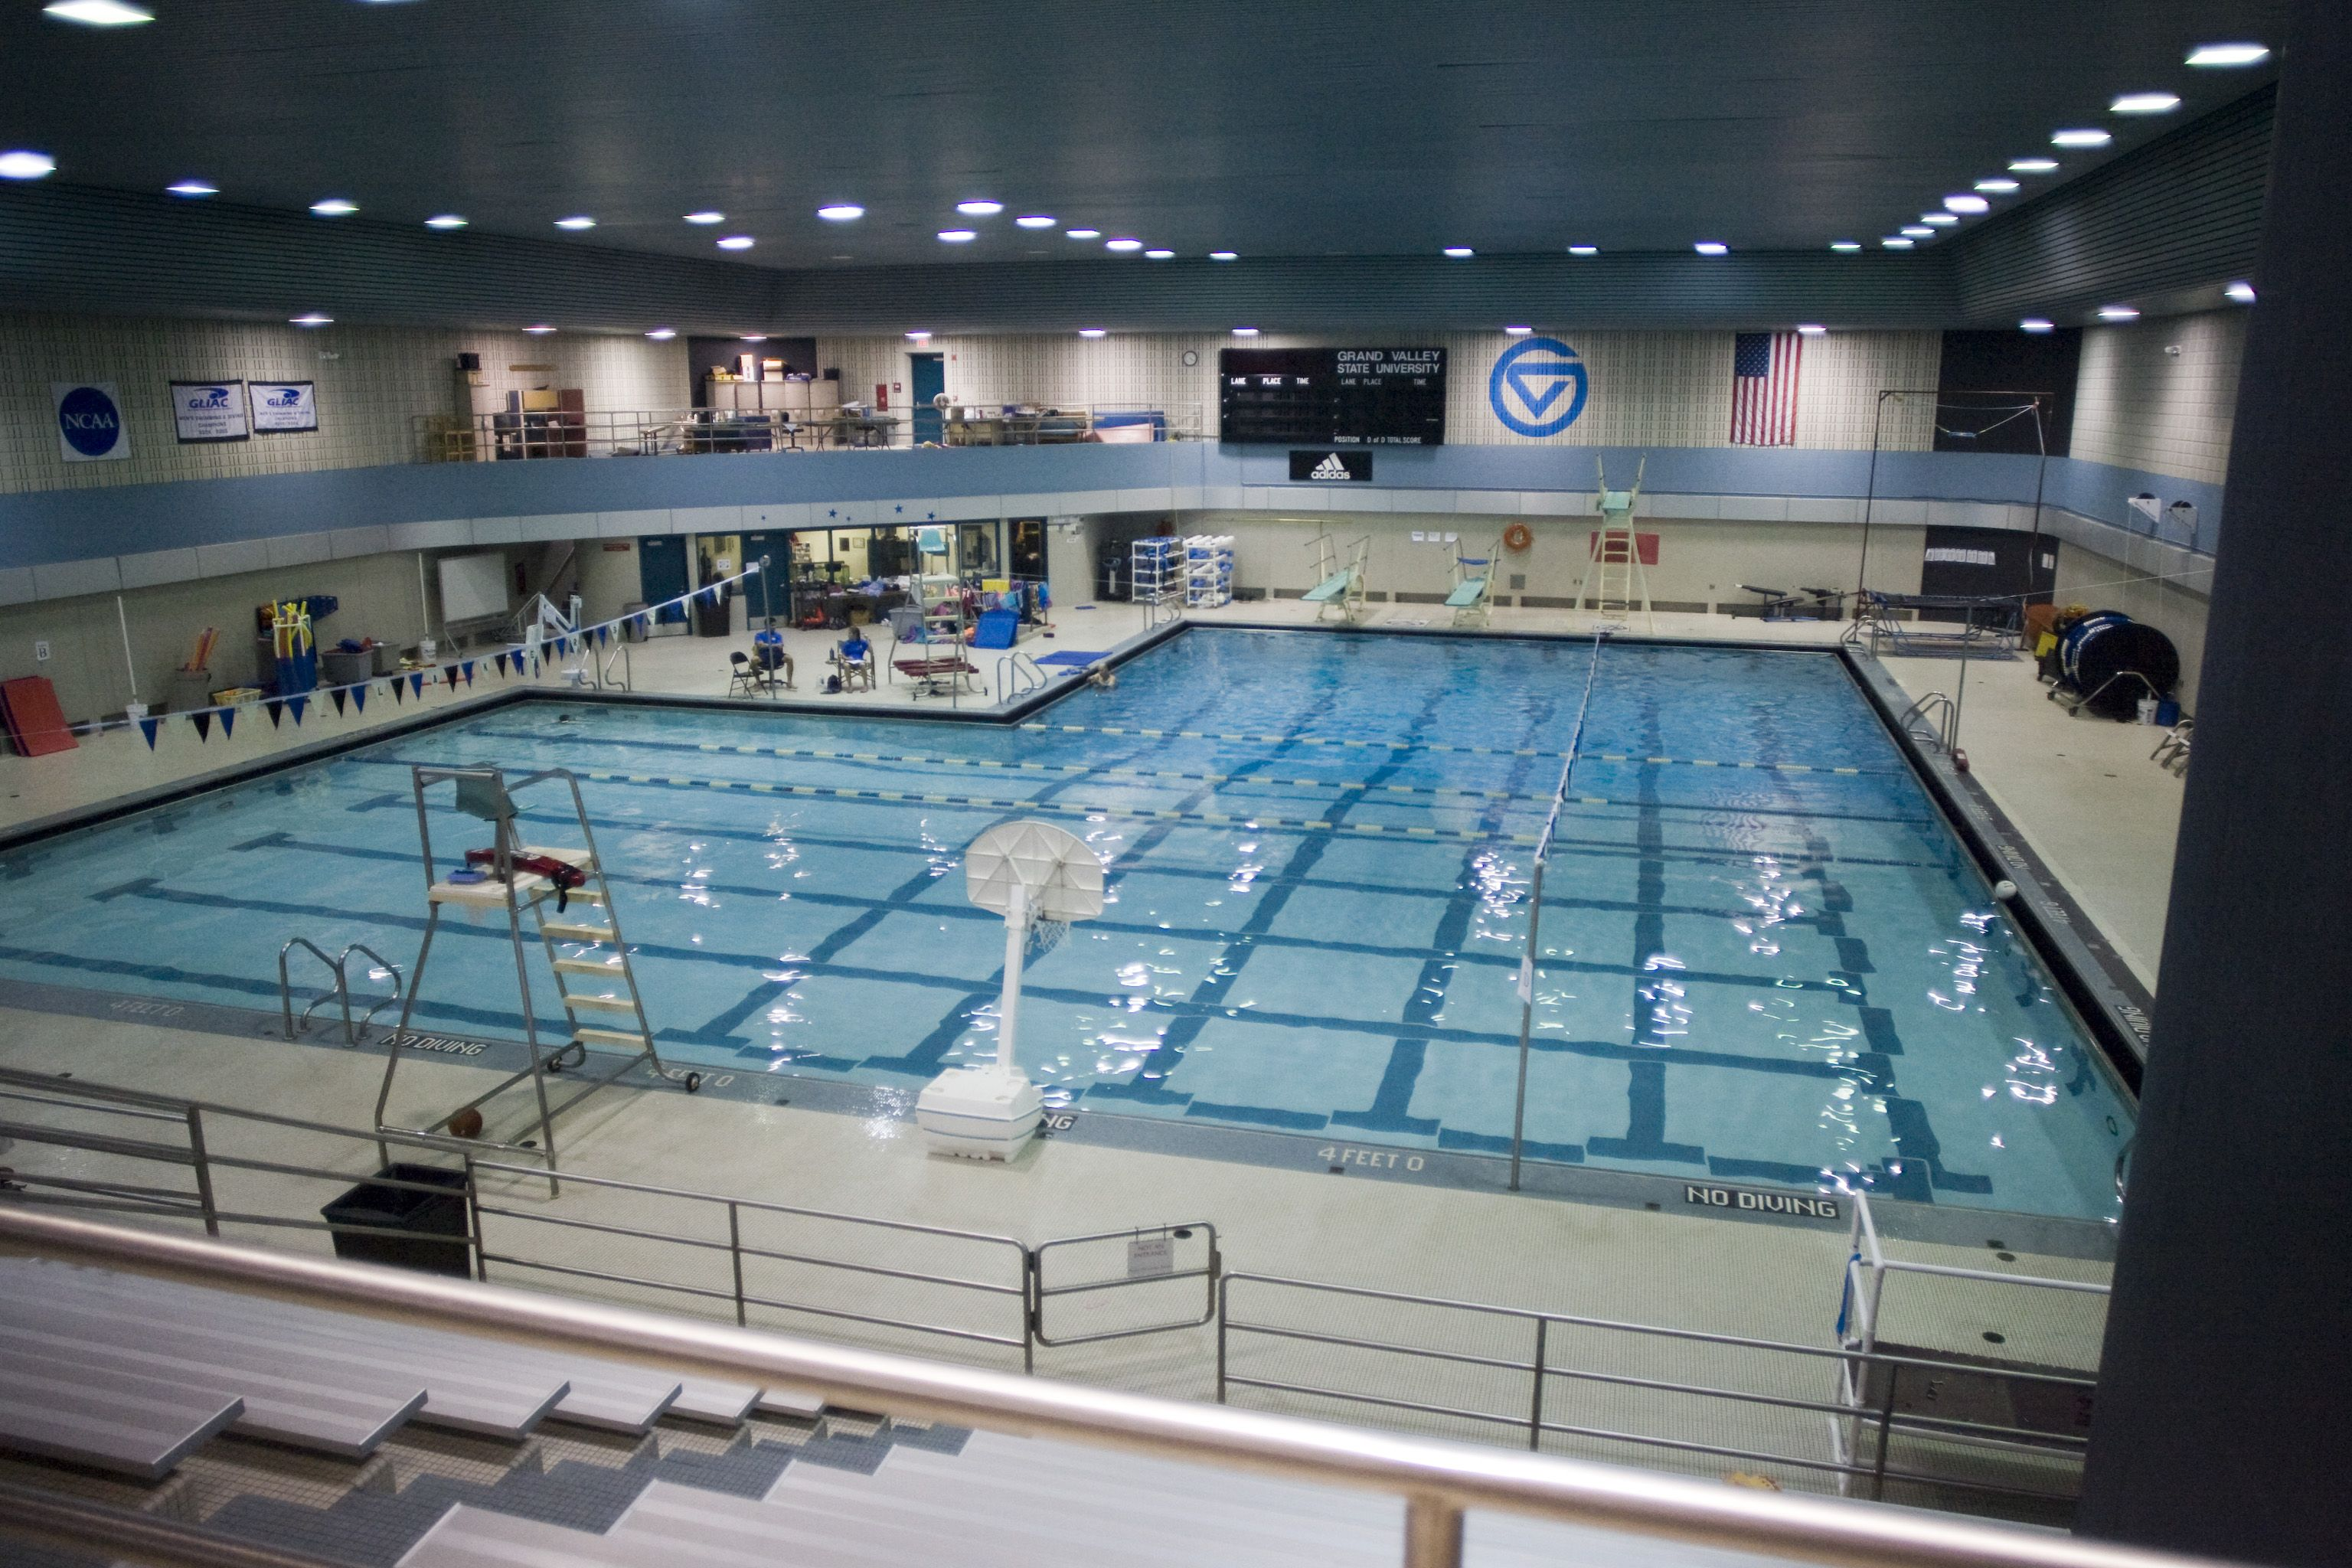 GVSU Pool Swimming & Diving Grand valley state, Grand